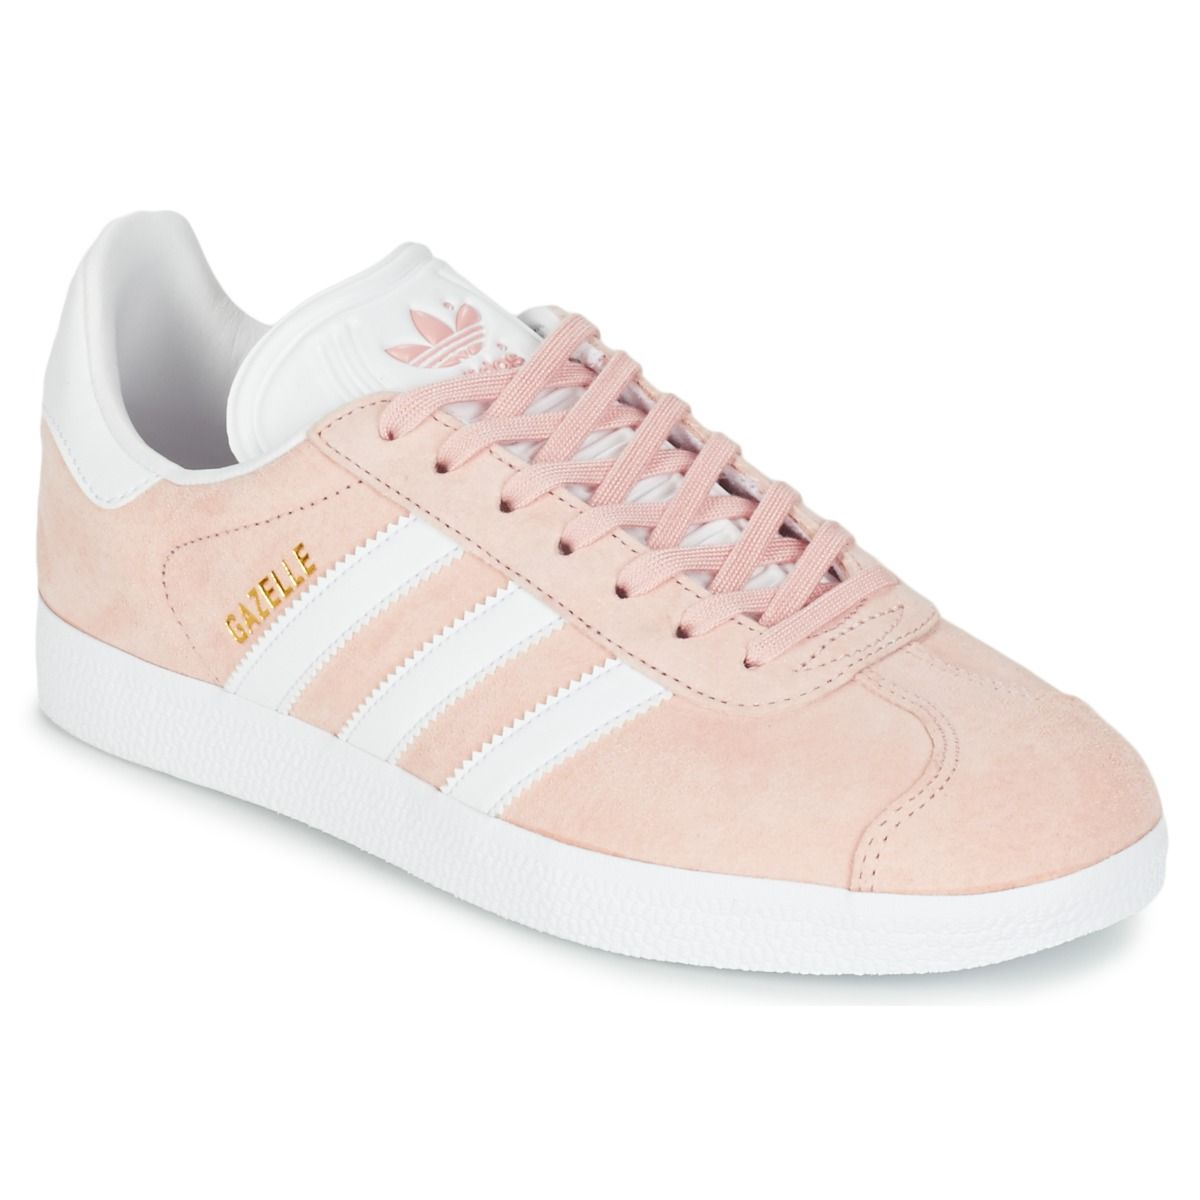 detailed look 60bed 26dd7 sapatilhas adidas   adidas Originals GAZELLE Rose - Livraison Gratuite avec  Spartoo.com .